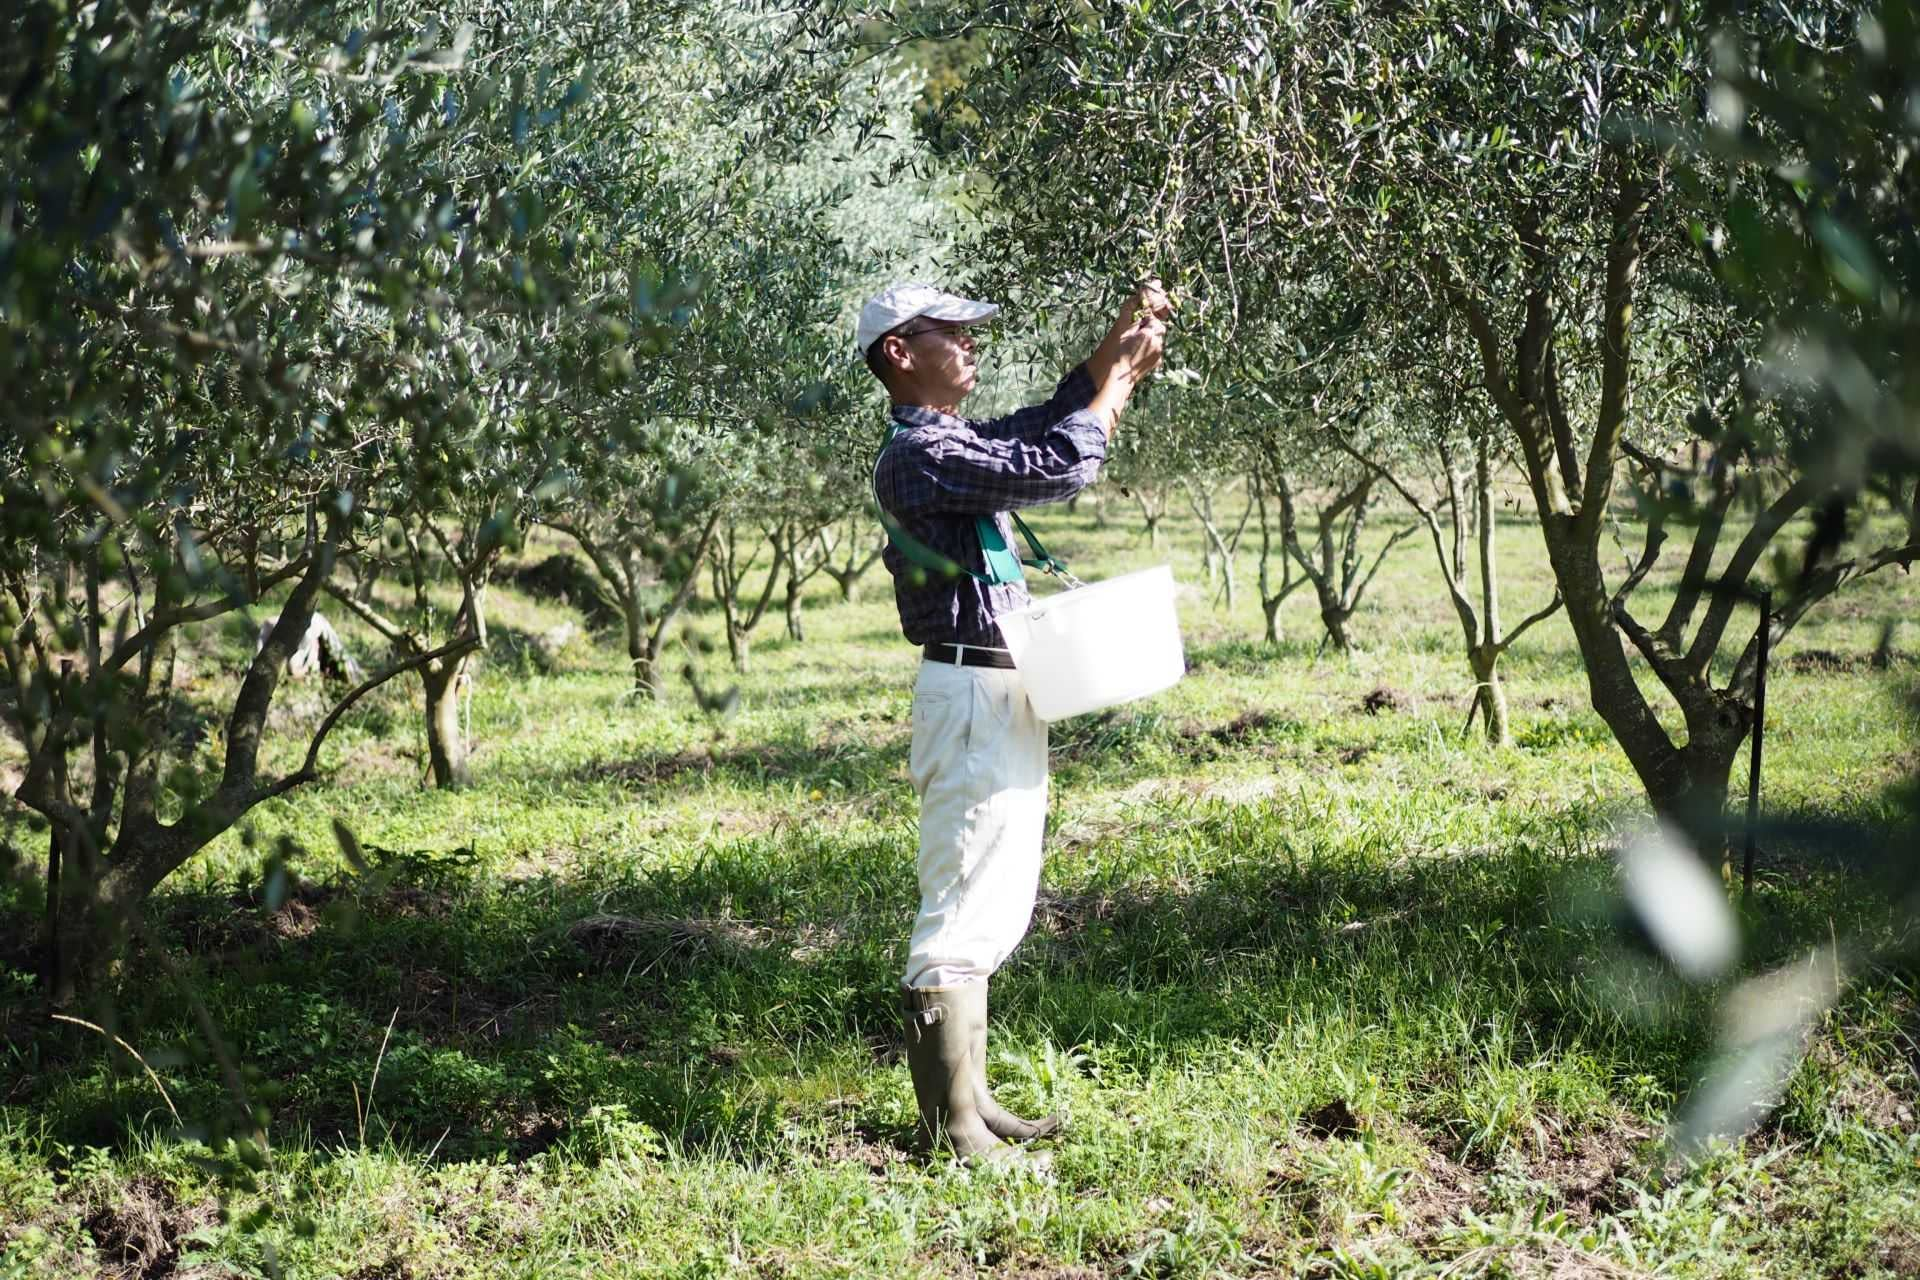 asia-competitions-profiles-the-best-olive-oils-awardwinning-producers-optimistic-as-olive-oil-culture-takes-root-in-japan-olive-oil-times